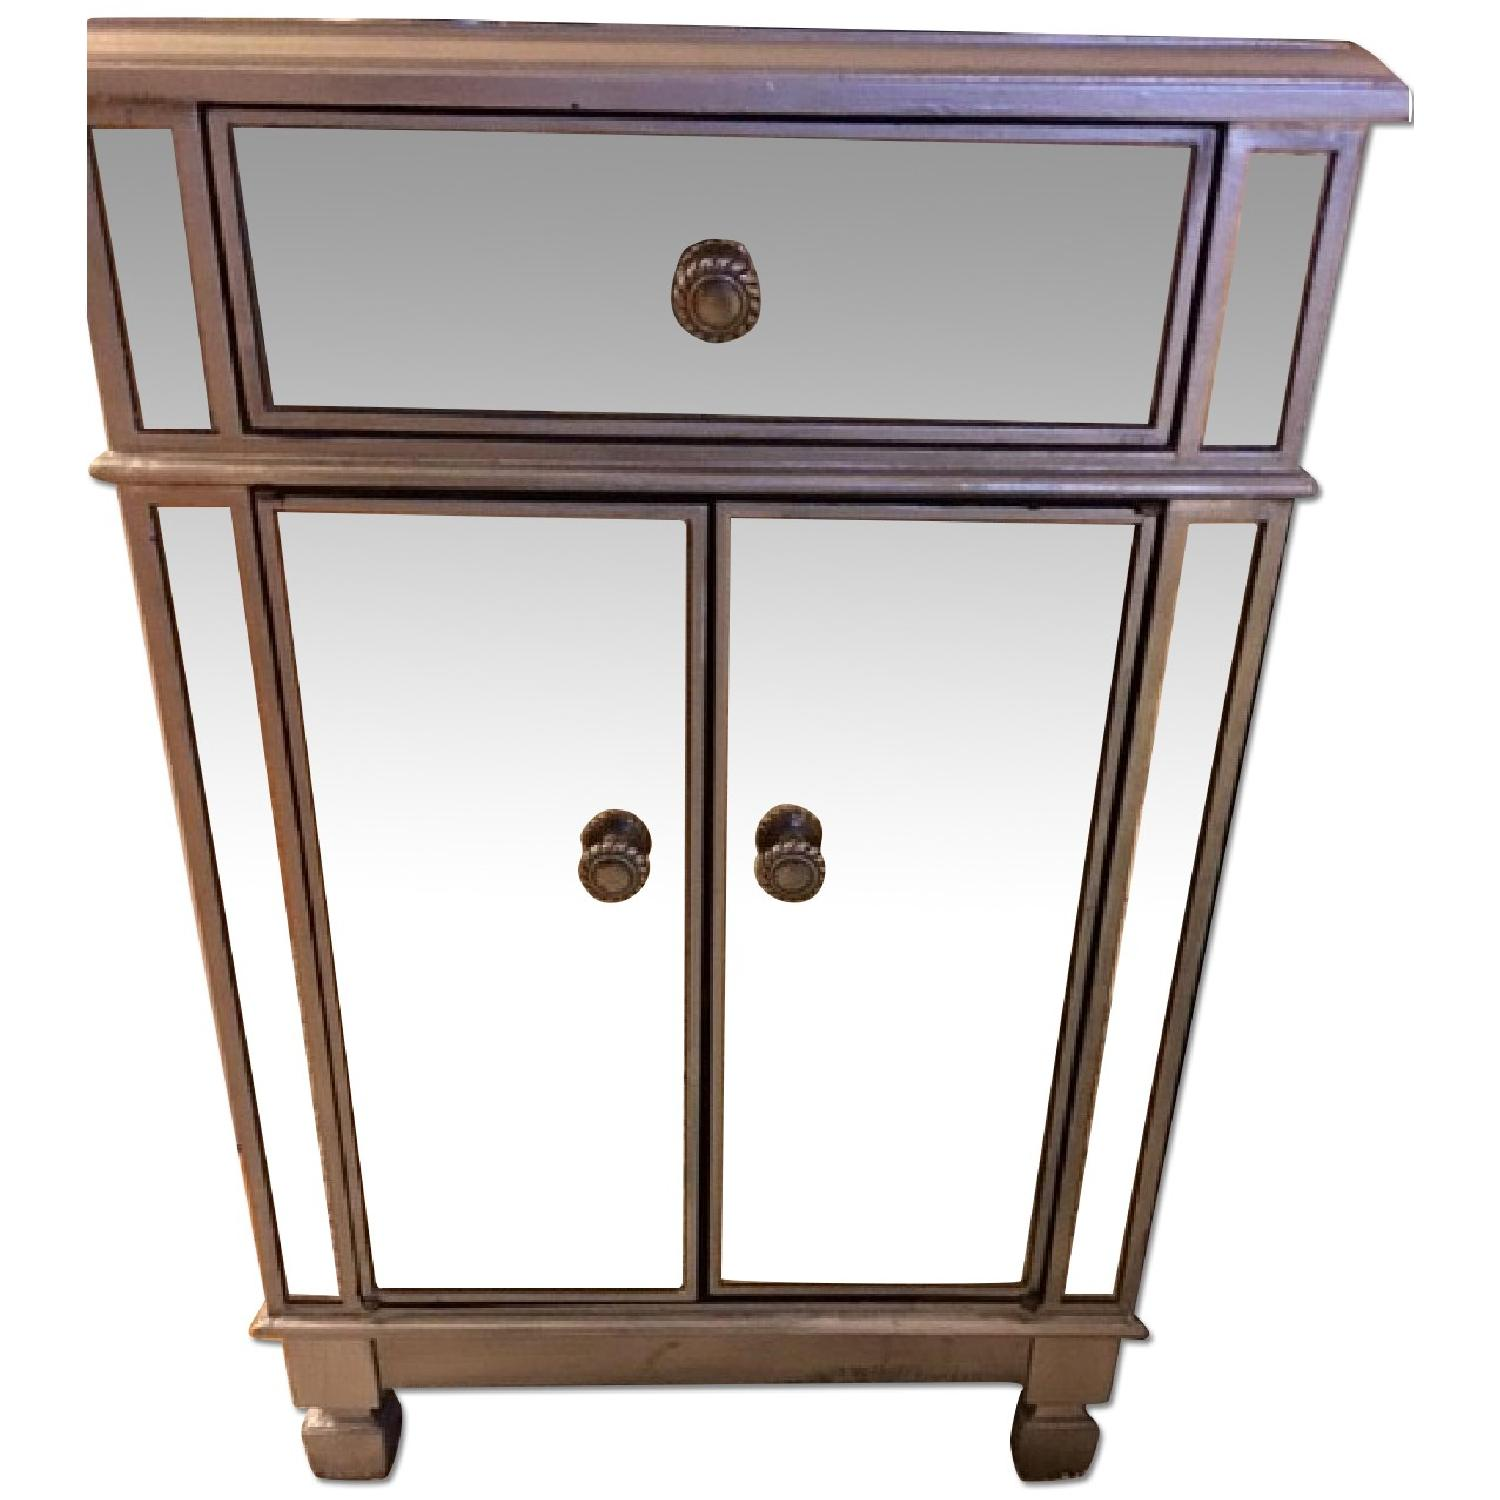 Pier 1 Hayworth Mirrored Bedside Chest in Silver - image-0